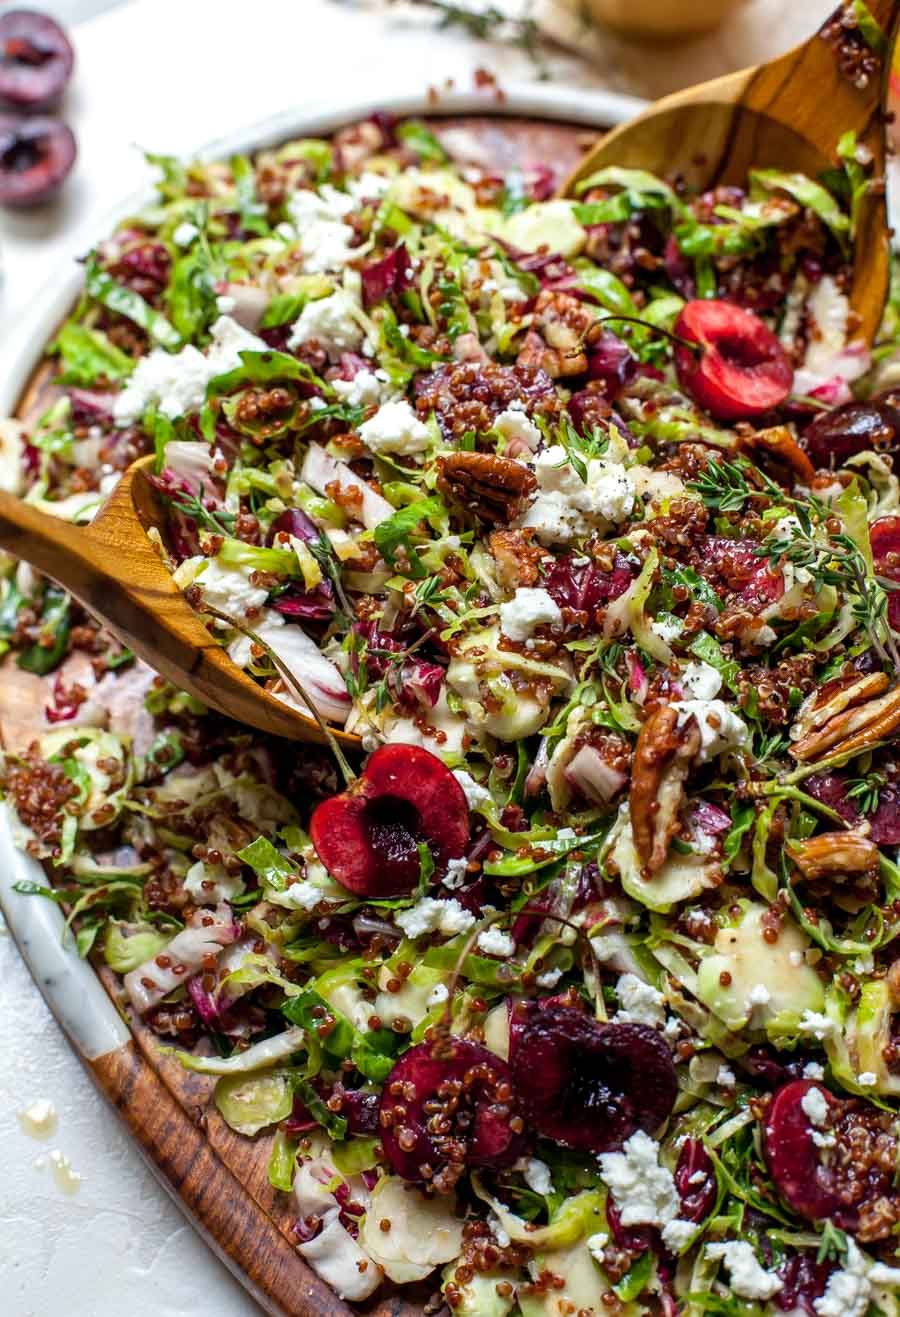 Brussels and Quinoa Salad with Cherries, Goat Cheese, Pecans, and Maple-Mustard Dressing